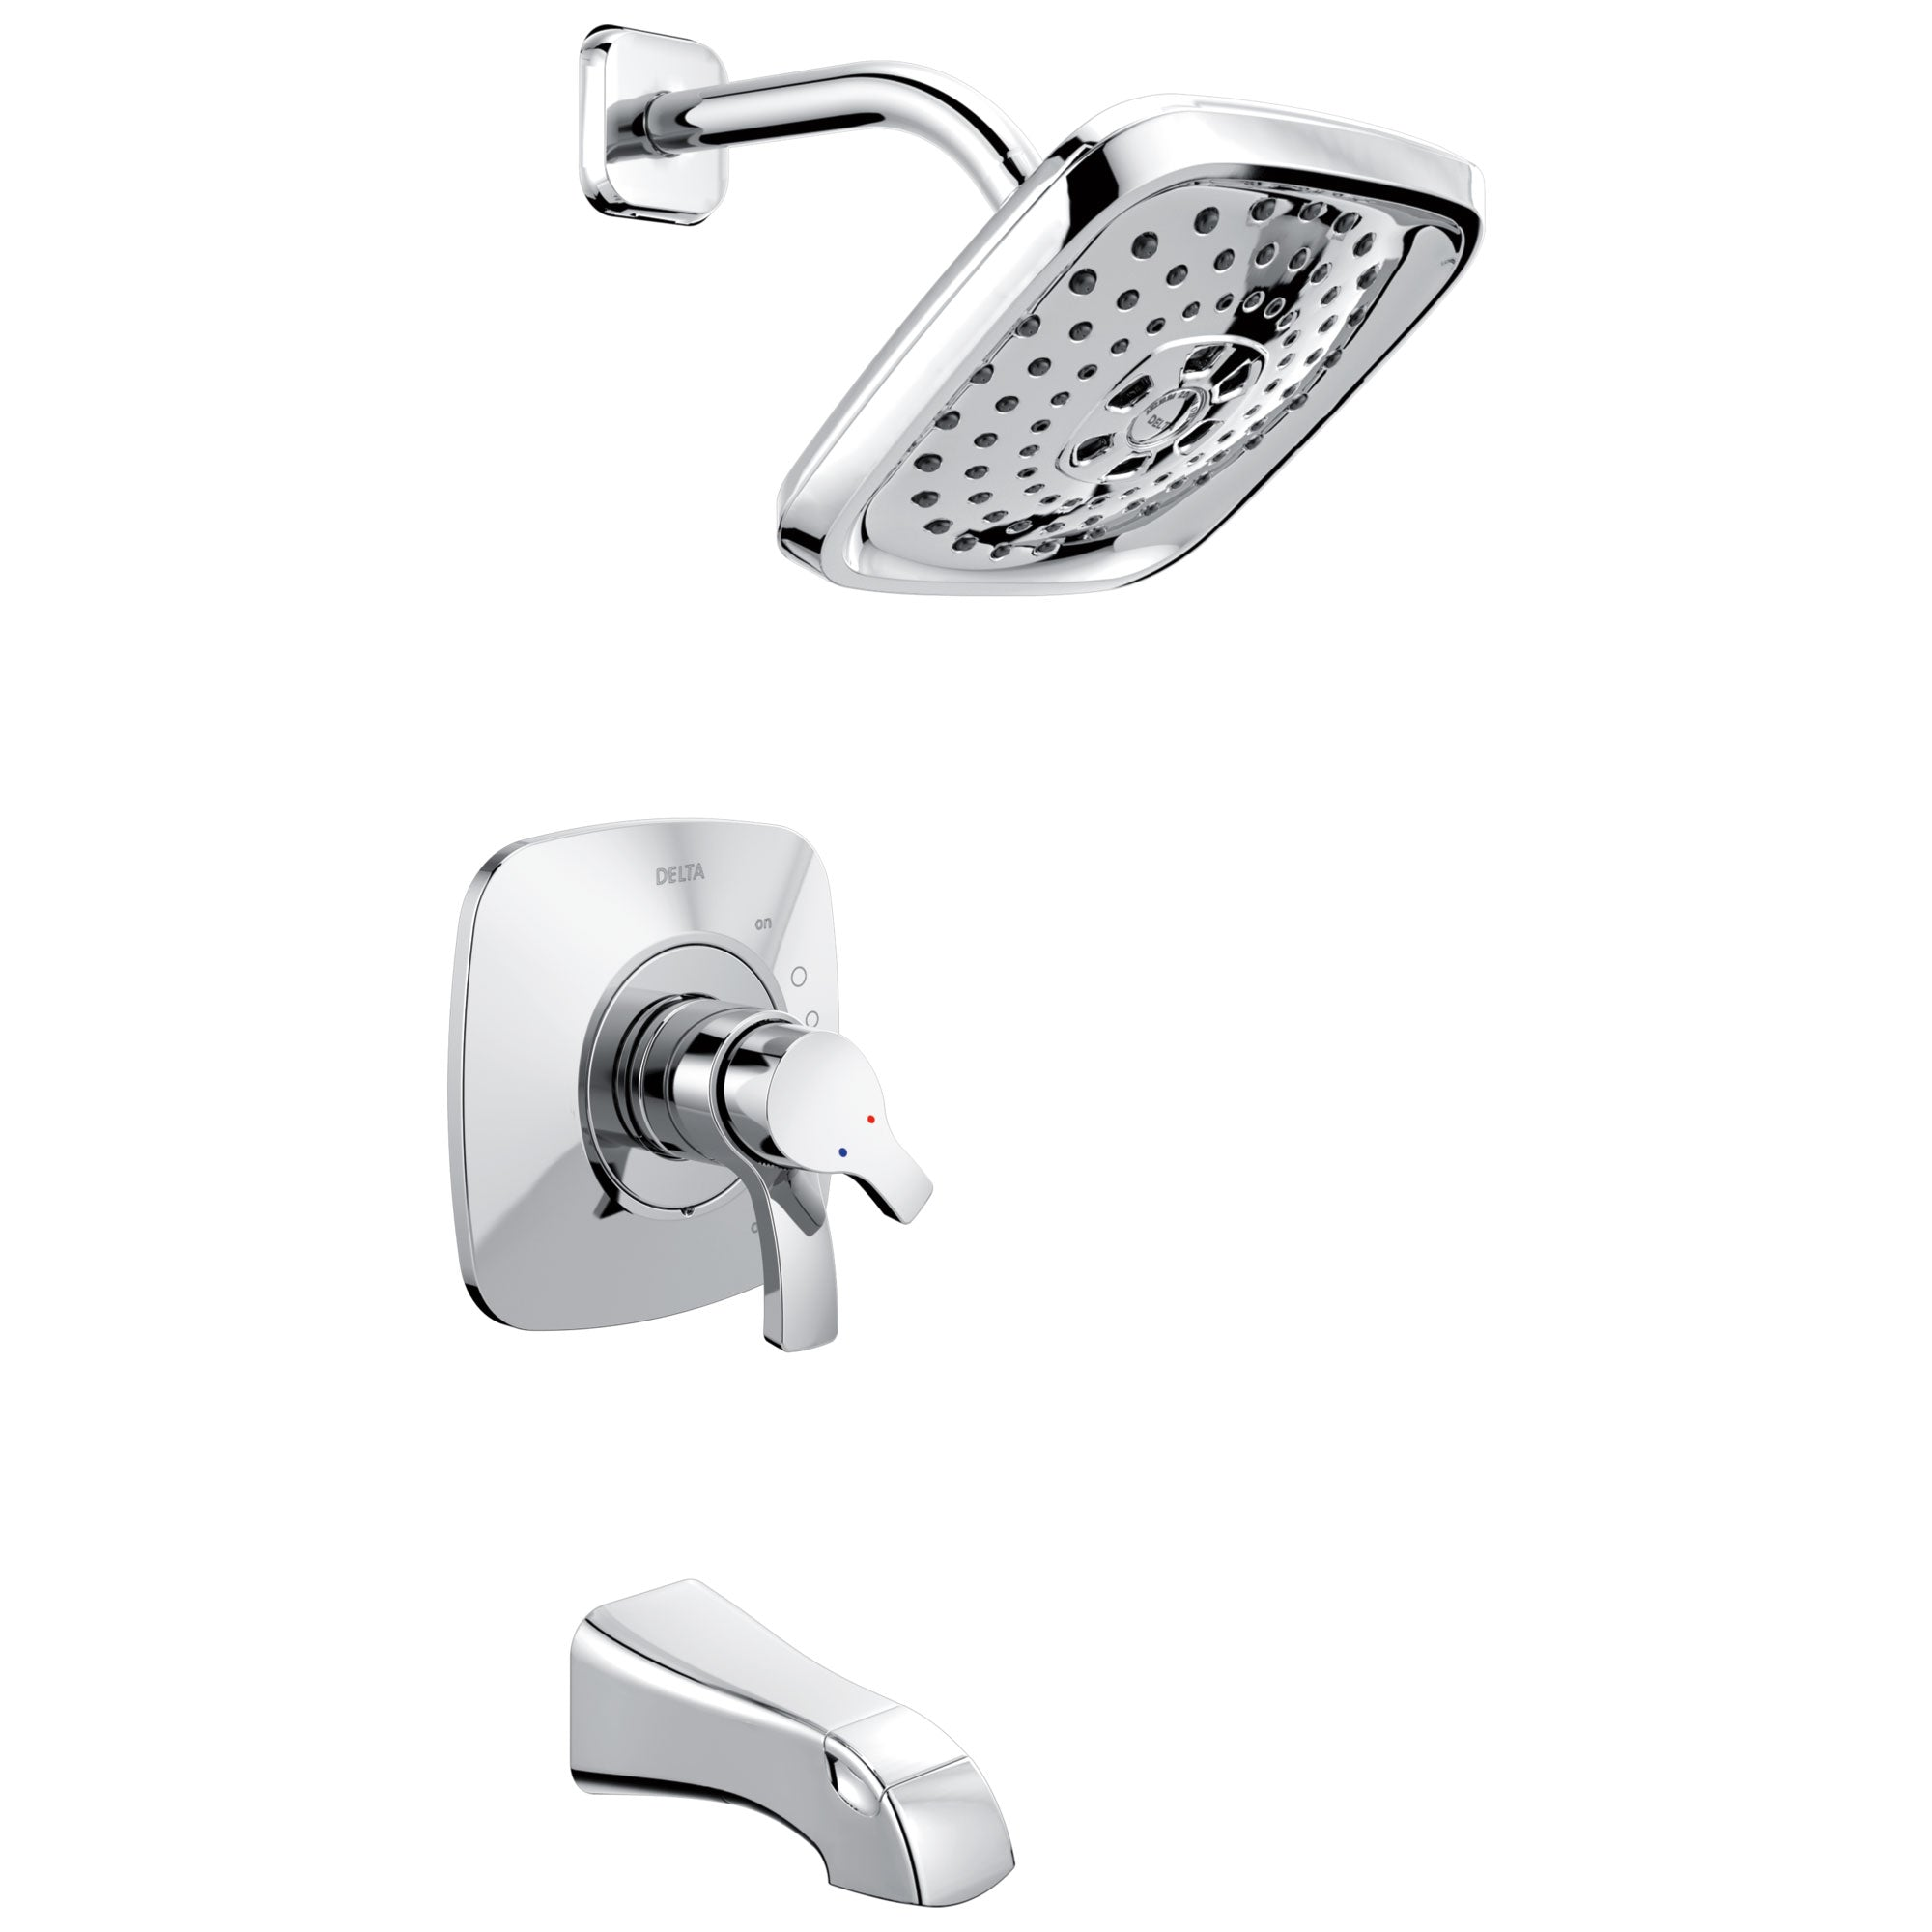 Delta Tesla Collection Chrome Modern Dual Pressure and Temperature Control Handle Tub and Shower Combination Faucet Includes Rough-in Valve with Stops D1965V